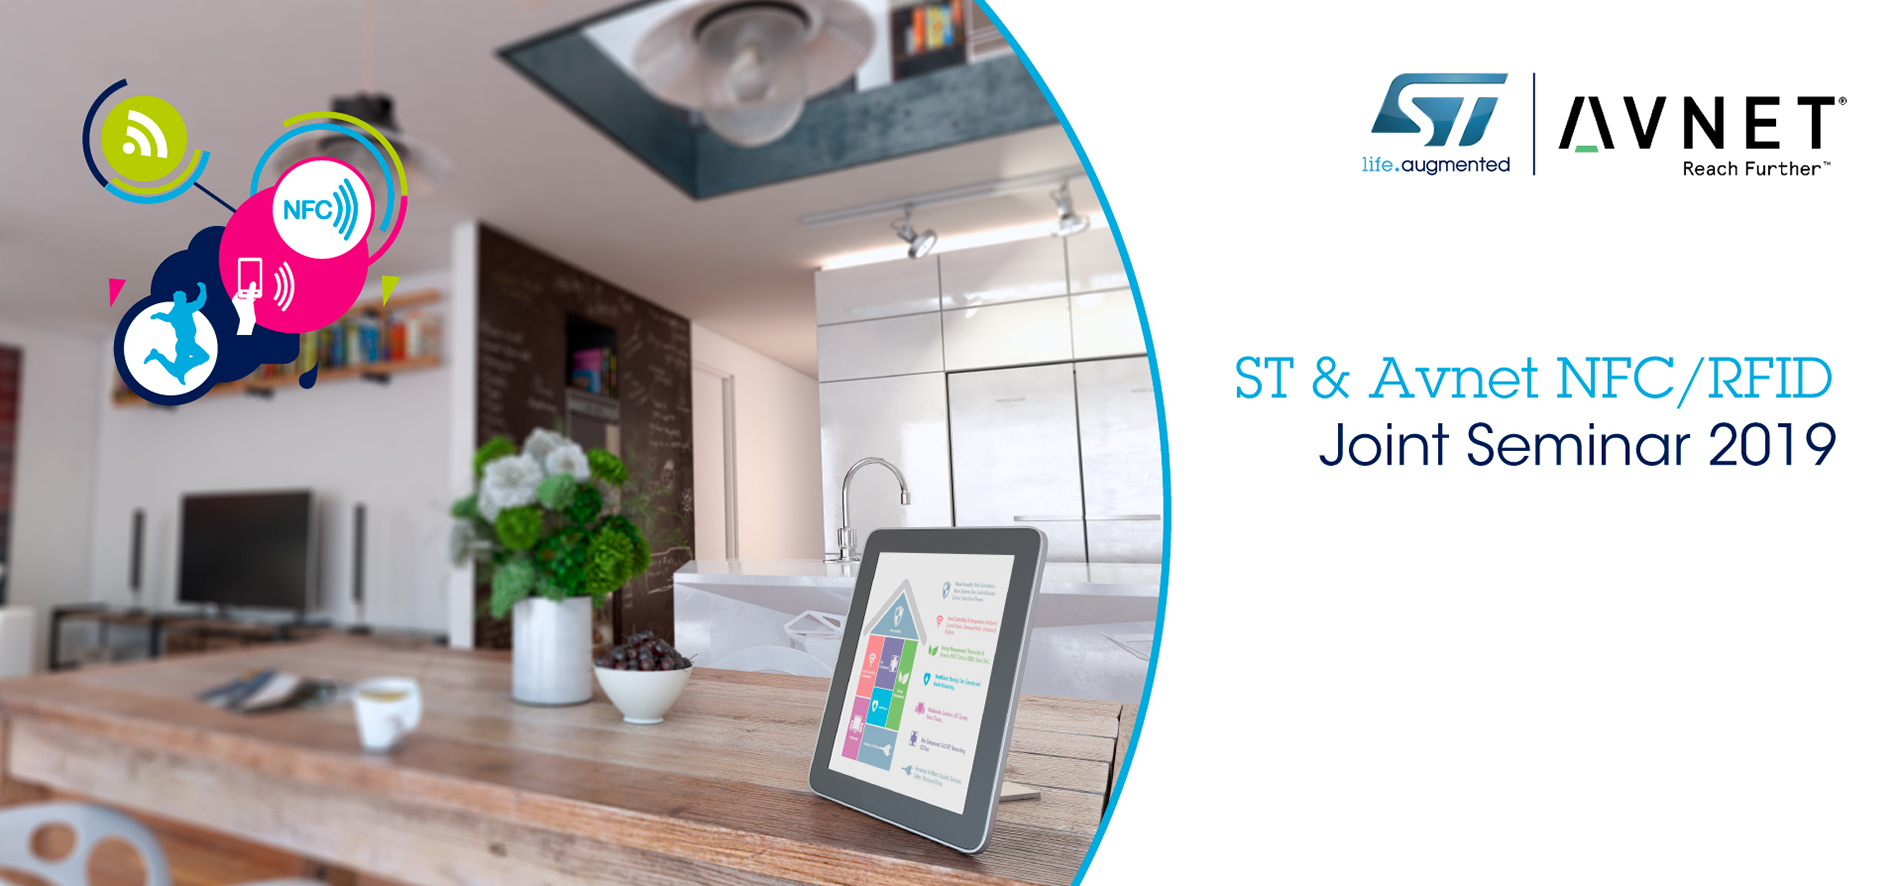 ST and Avnet NFC-RFID Joint Seminar 2019